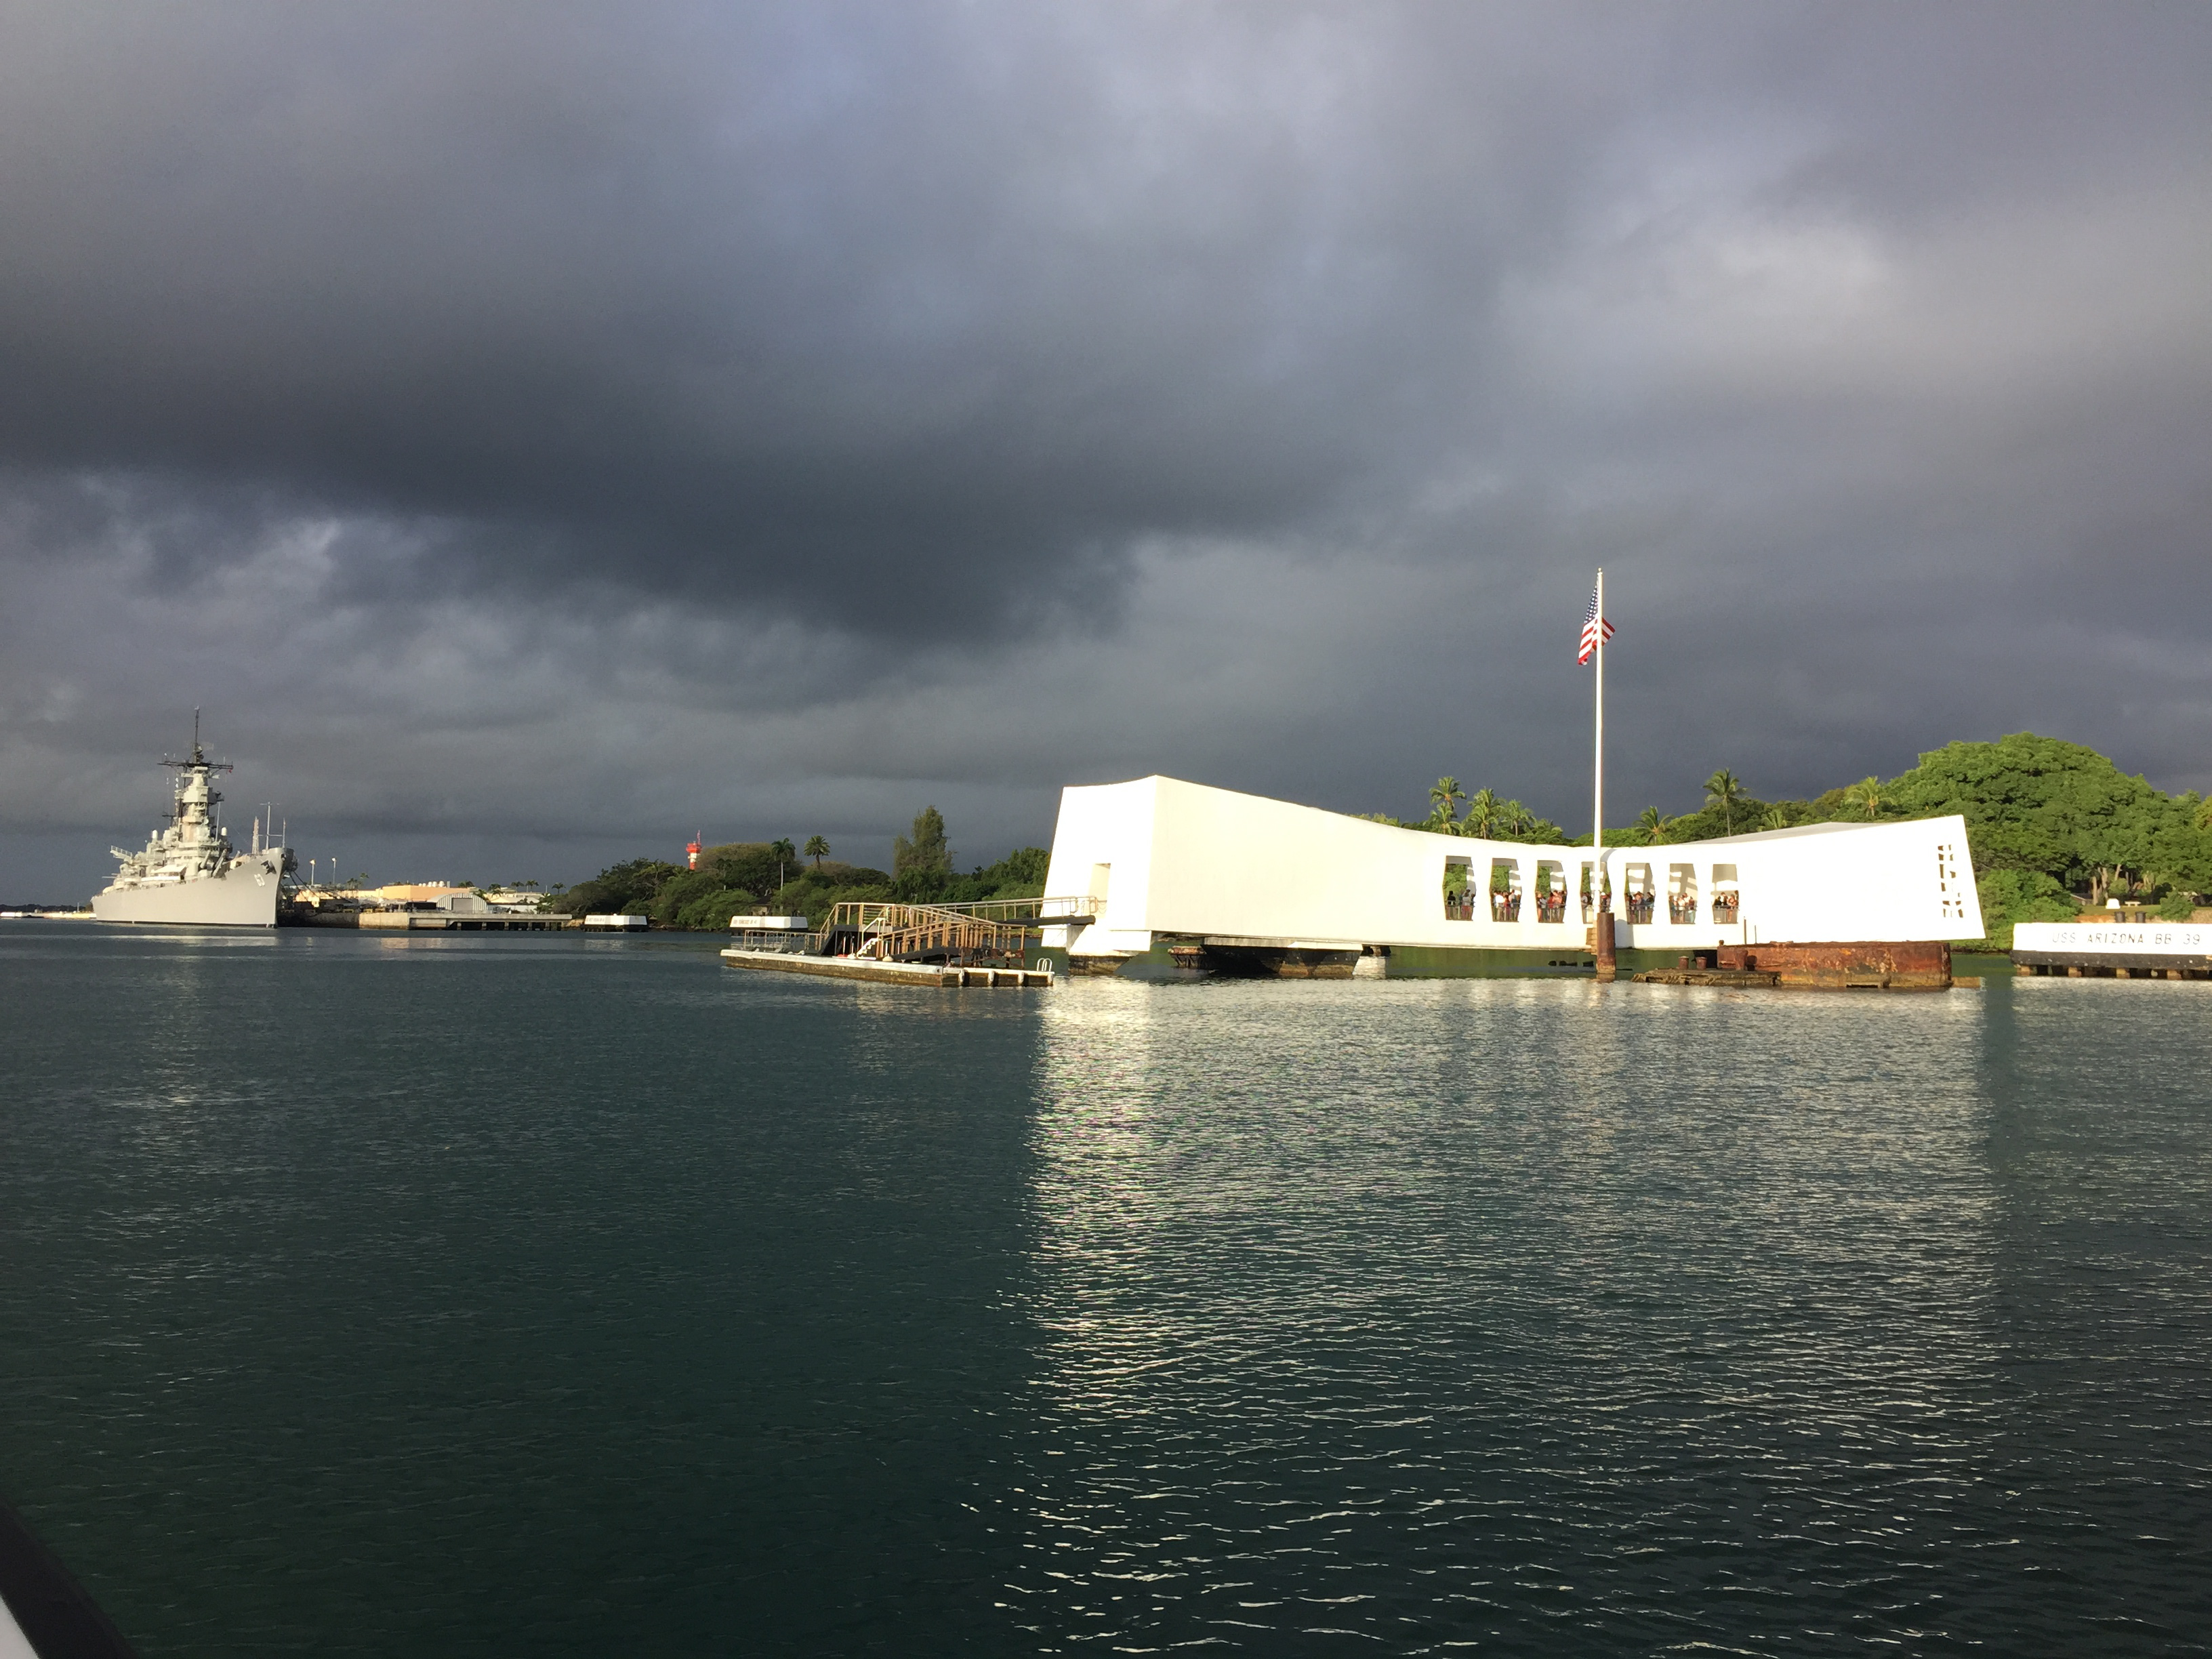 USS Arizona Memorial on the right surrounded by water.